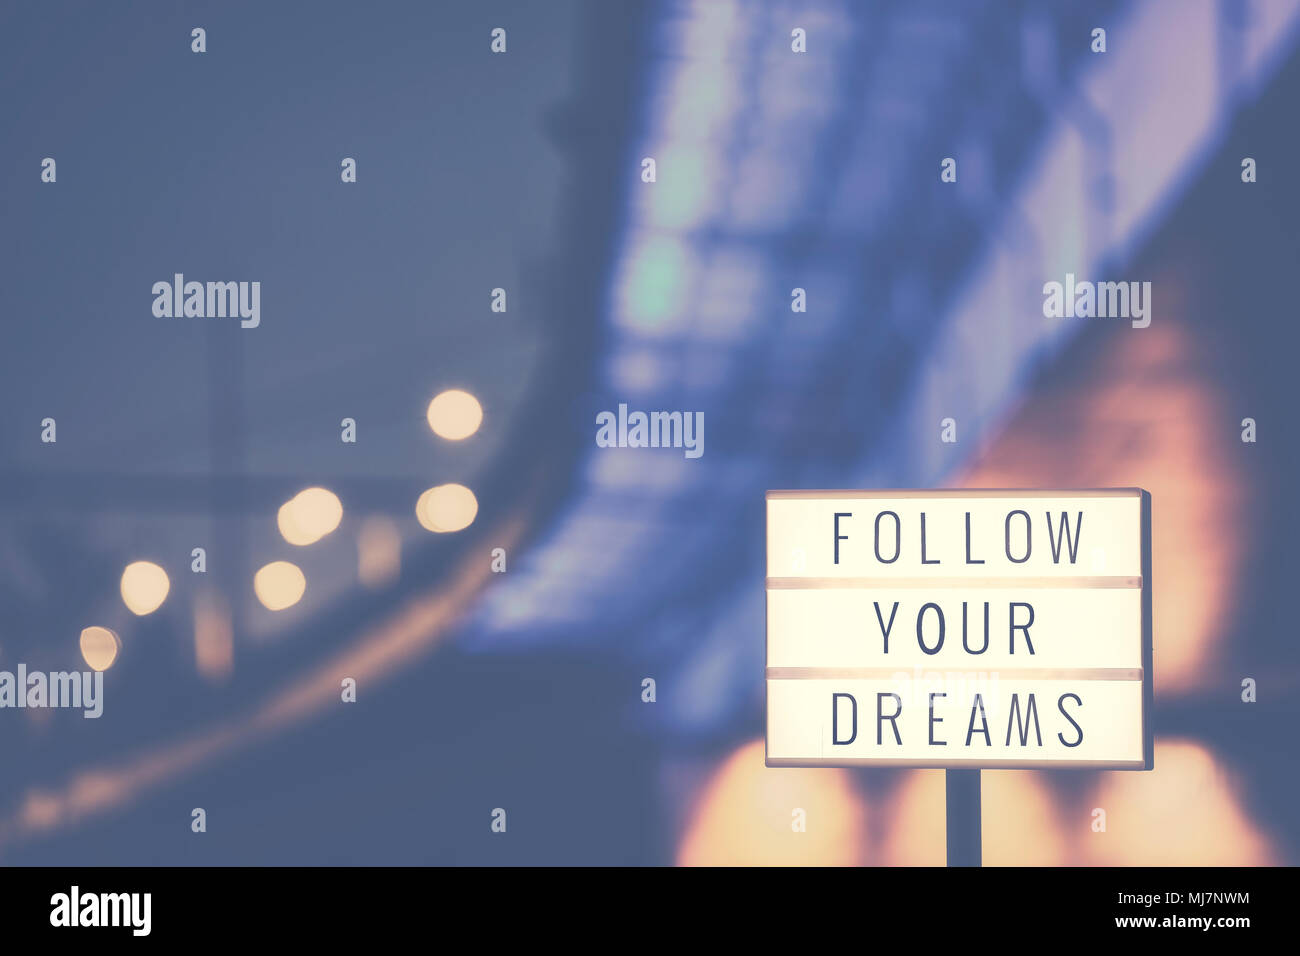 Follow Your Dreams inspirational life quote text in lightbox, city lights in background, color toned picture. - Stock Image